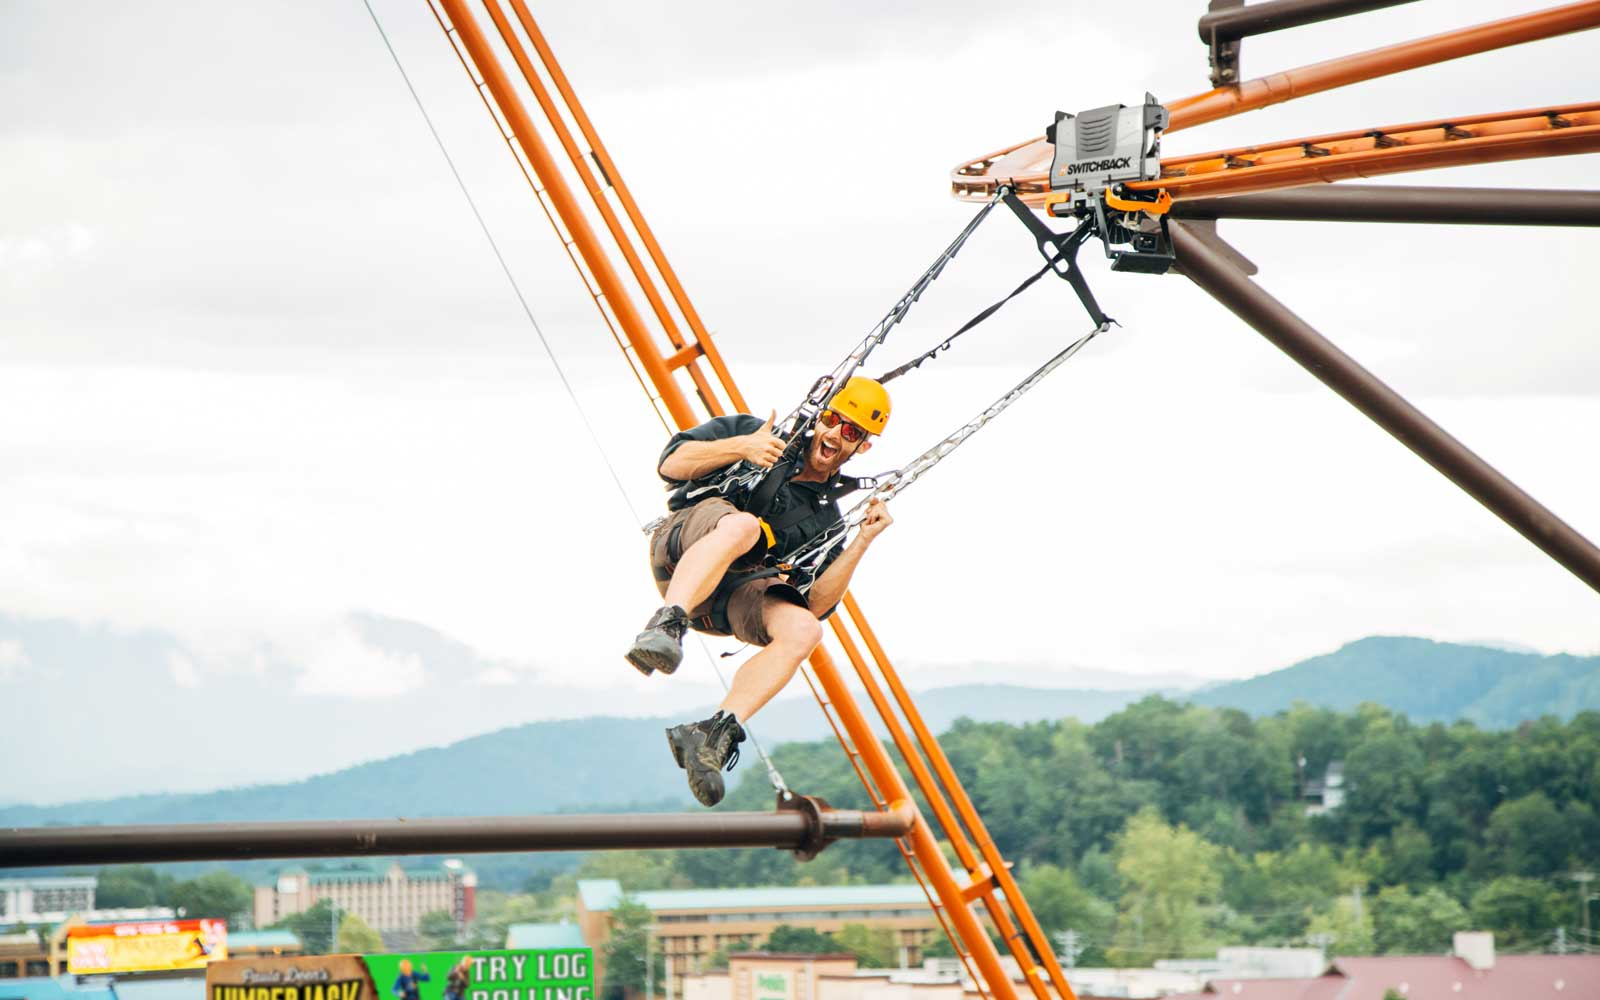 Zipline coaster at Paula Deen's Lumberjack Feud and Adventure Park